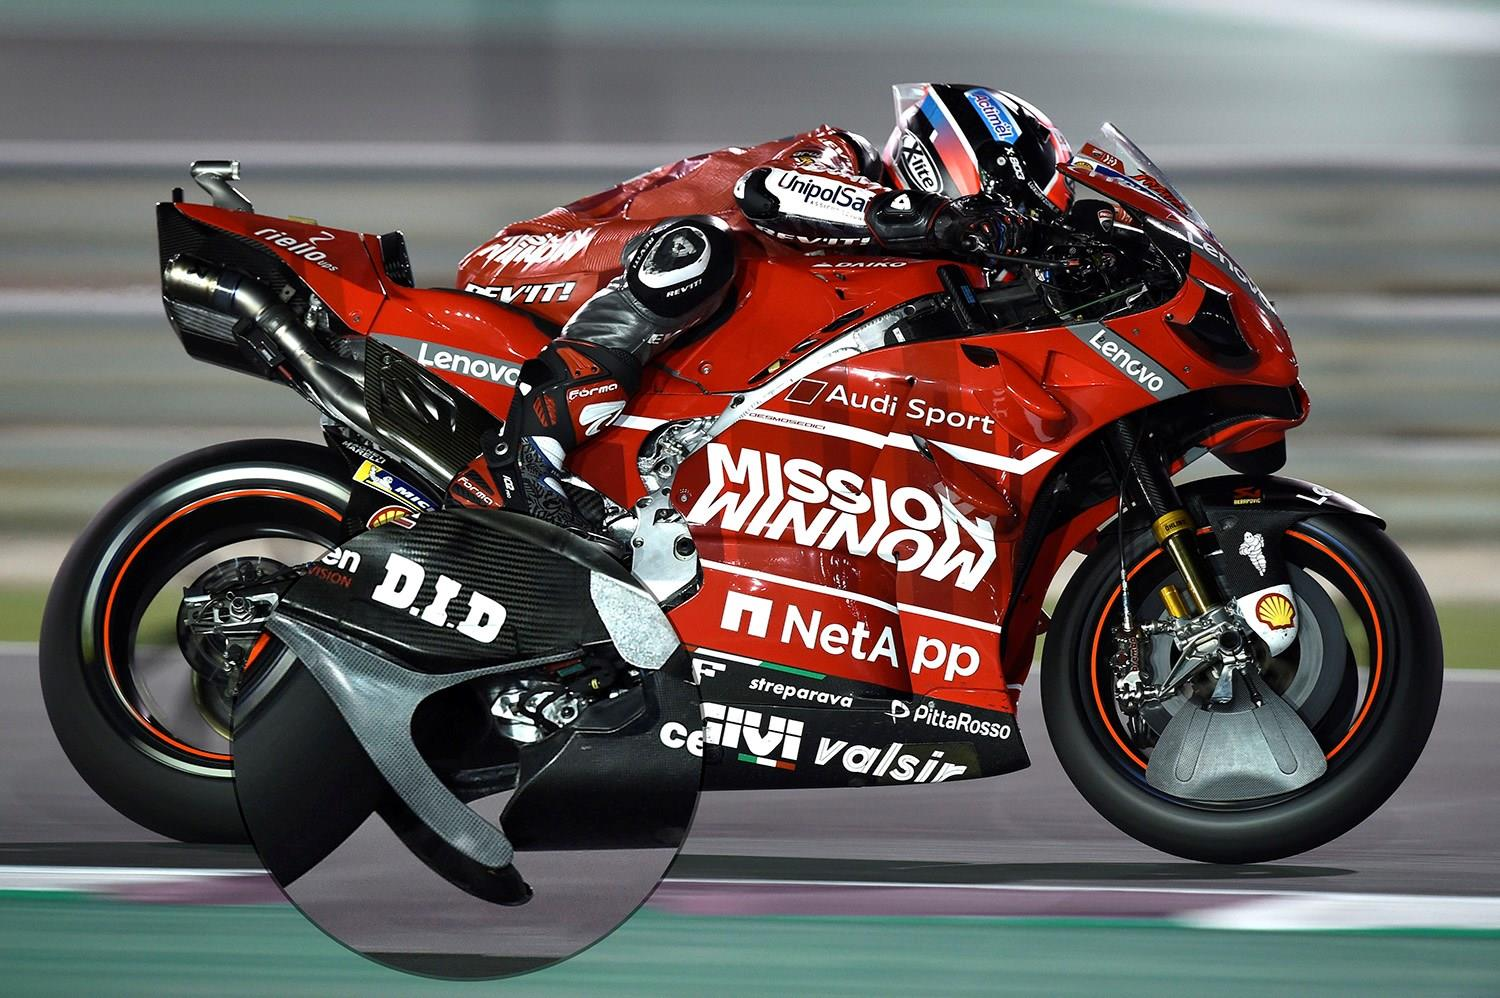 MotoGP: Court of appeal reject protests against Ducati spoiler